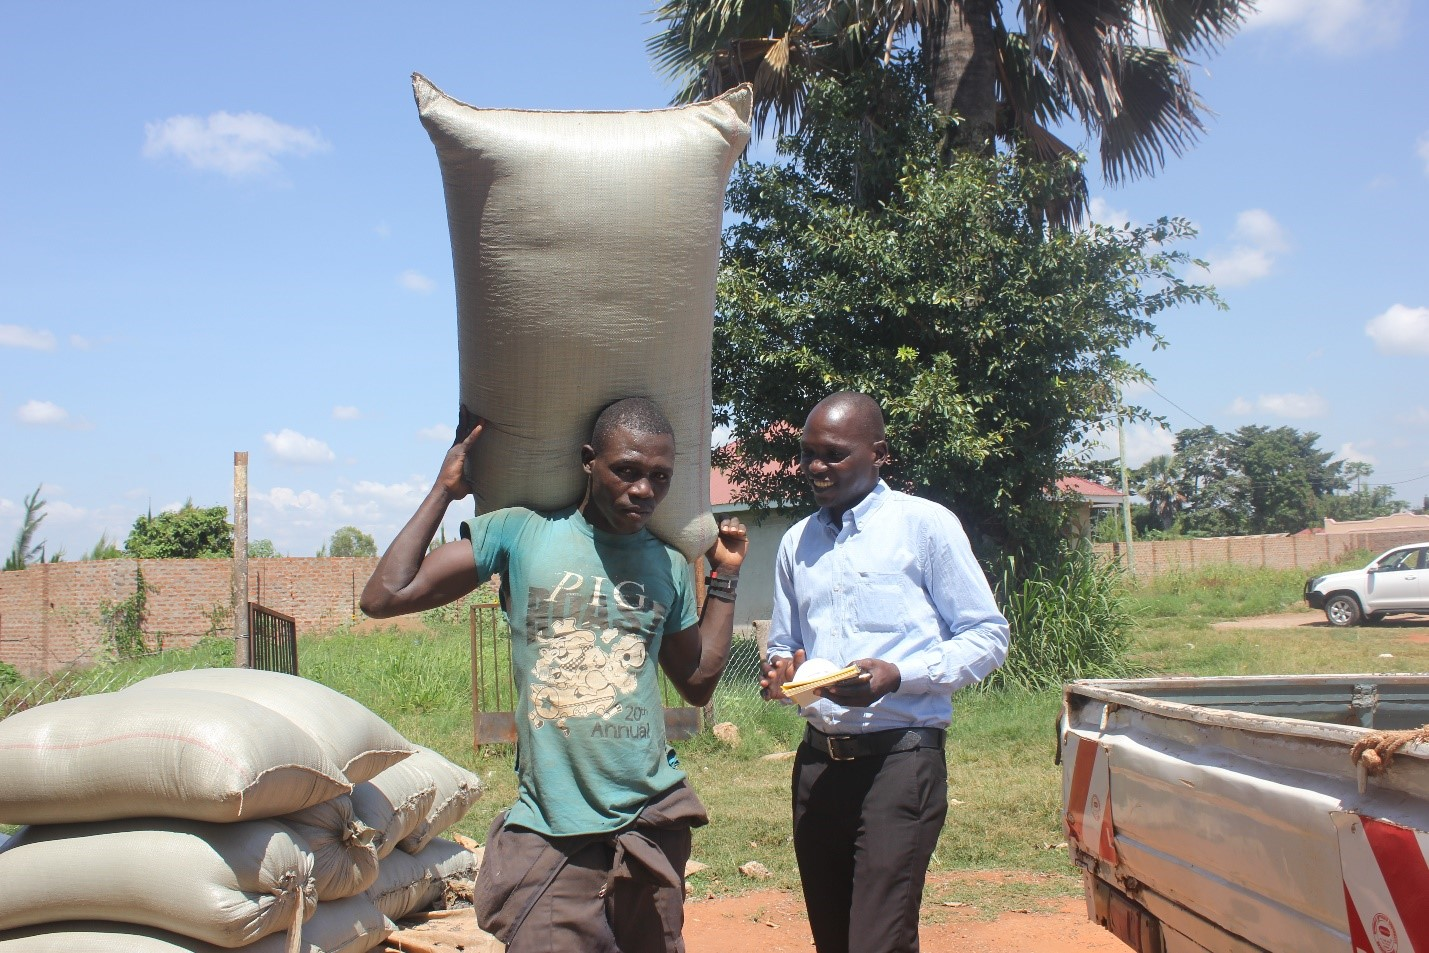 Walter Odyek, owner of Oasis Ltd. loads grain from a smallholder farmer. Source: NU-TEC MD